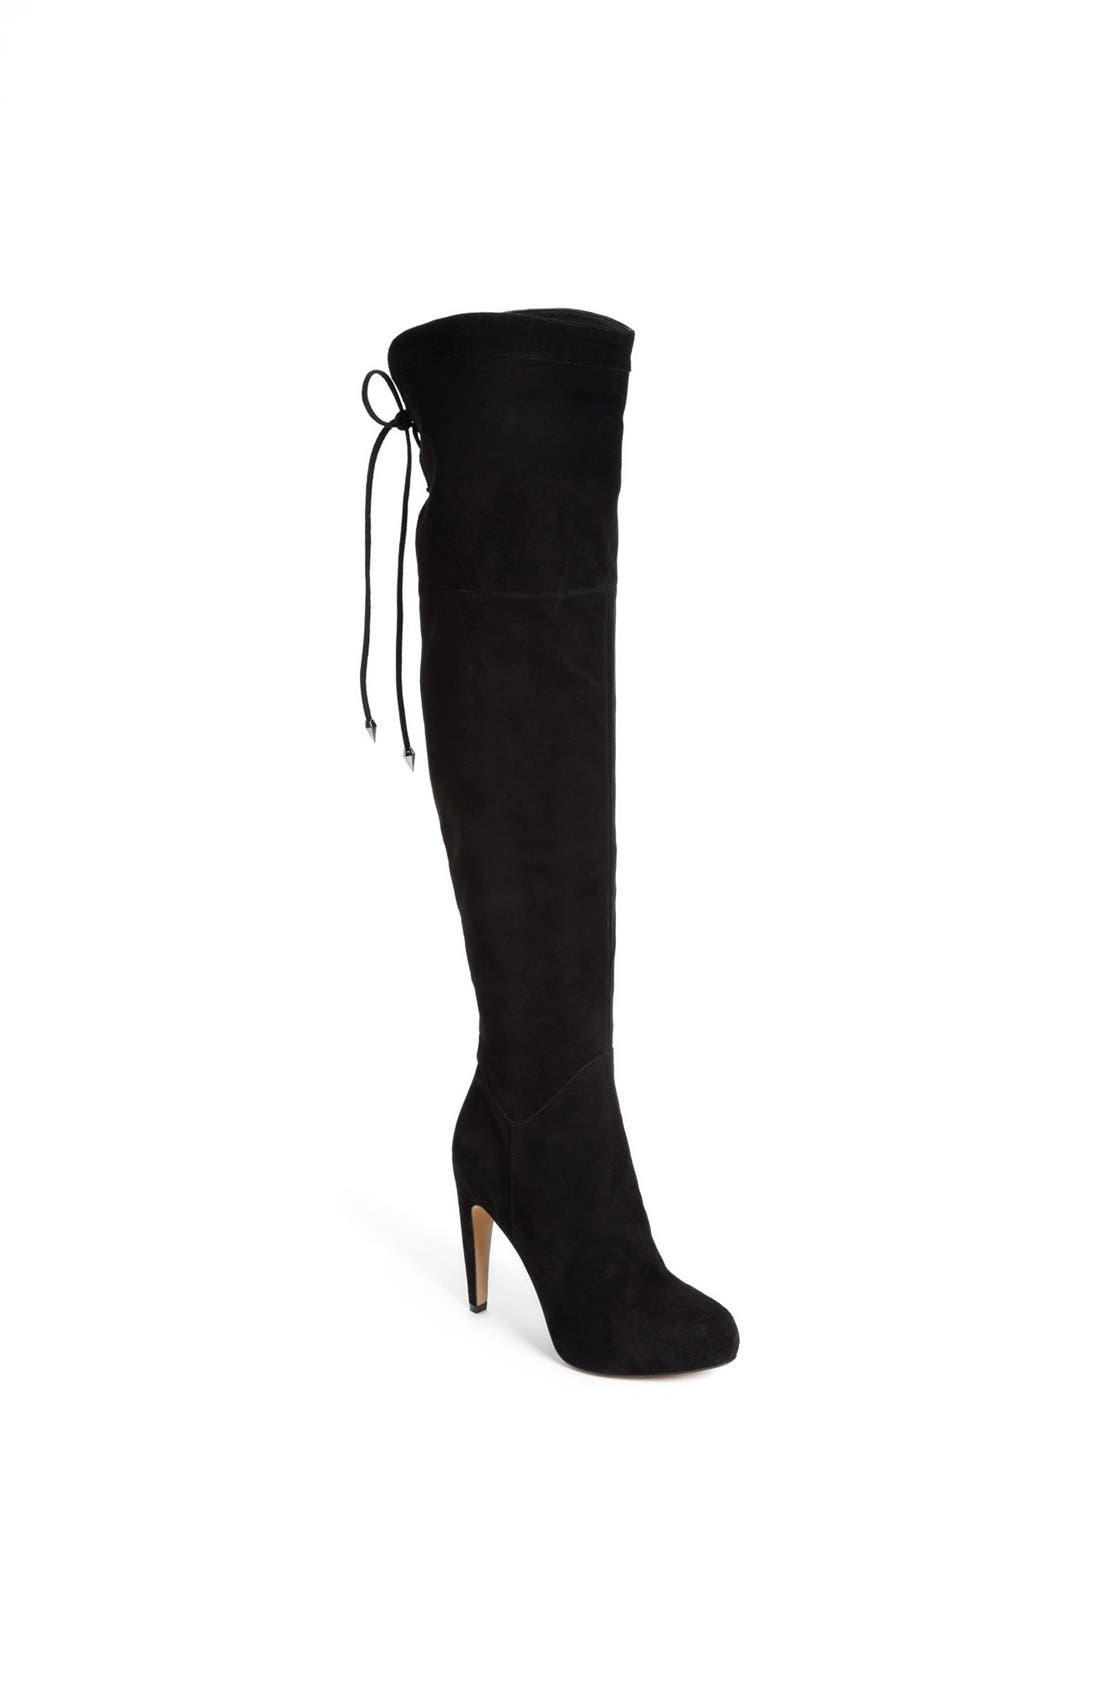 Alternate Image 1 Selected - Sam Edelman 'Kayla' Over the Knee Boot (Women) (Online Only)